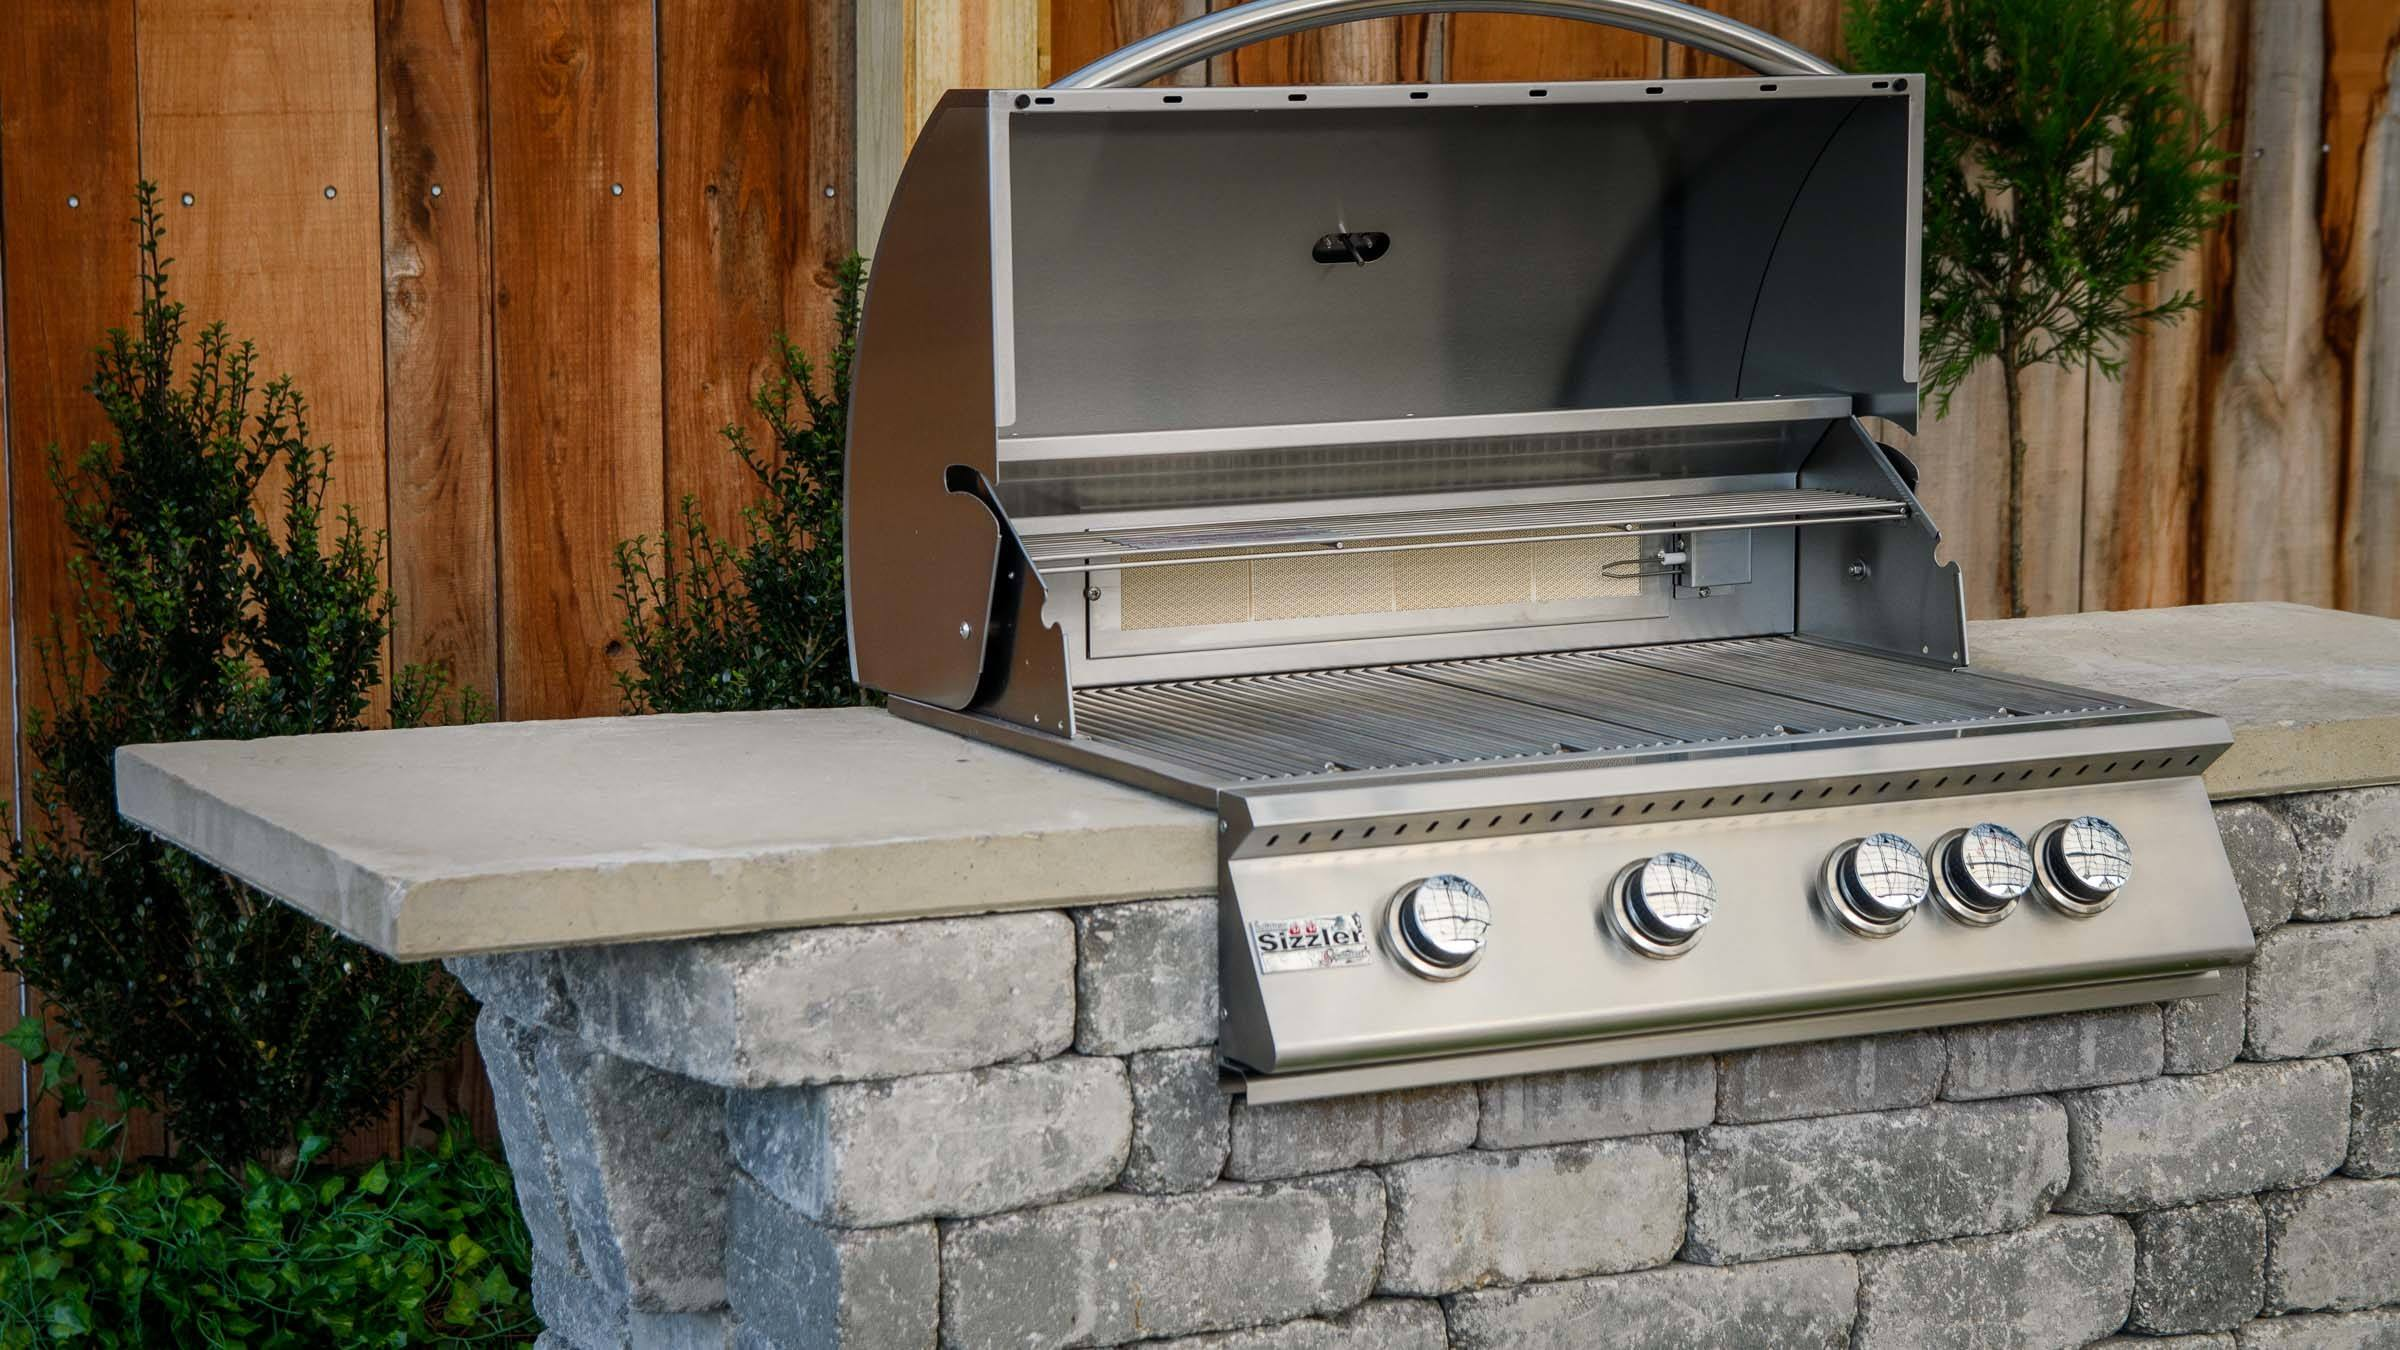 Willard Grill Island - Jealousy inducing grills without ... on Diy Patio Grill Island id=91758